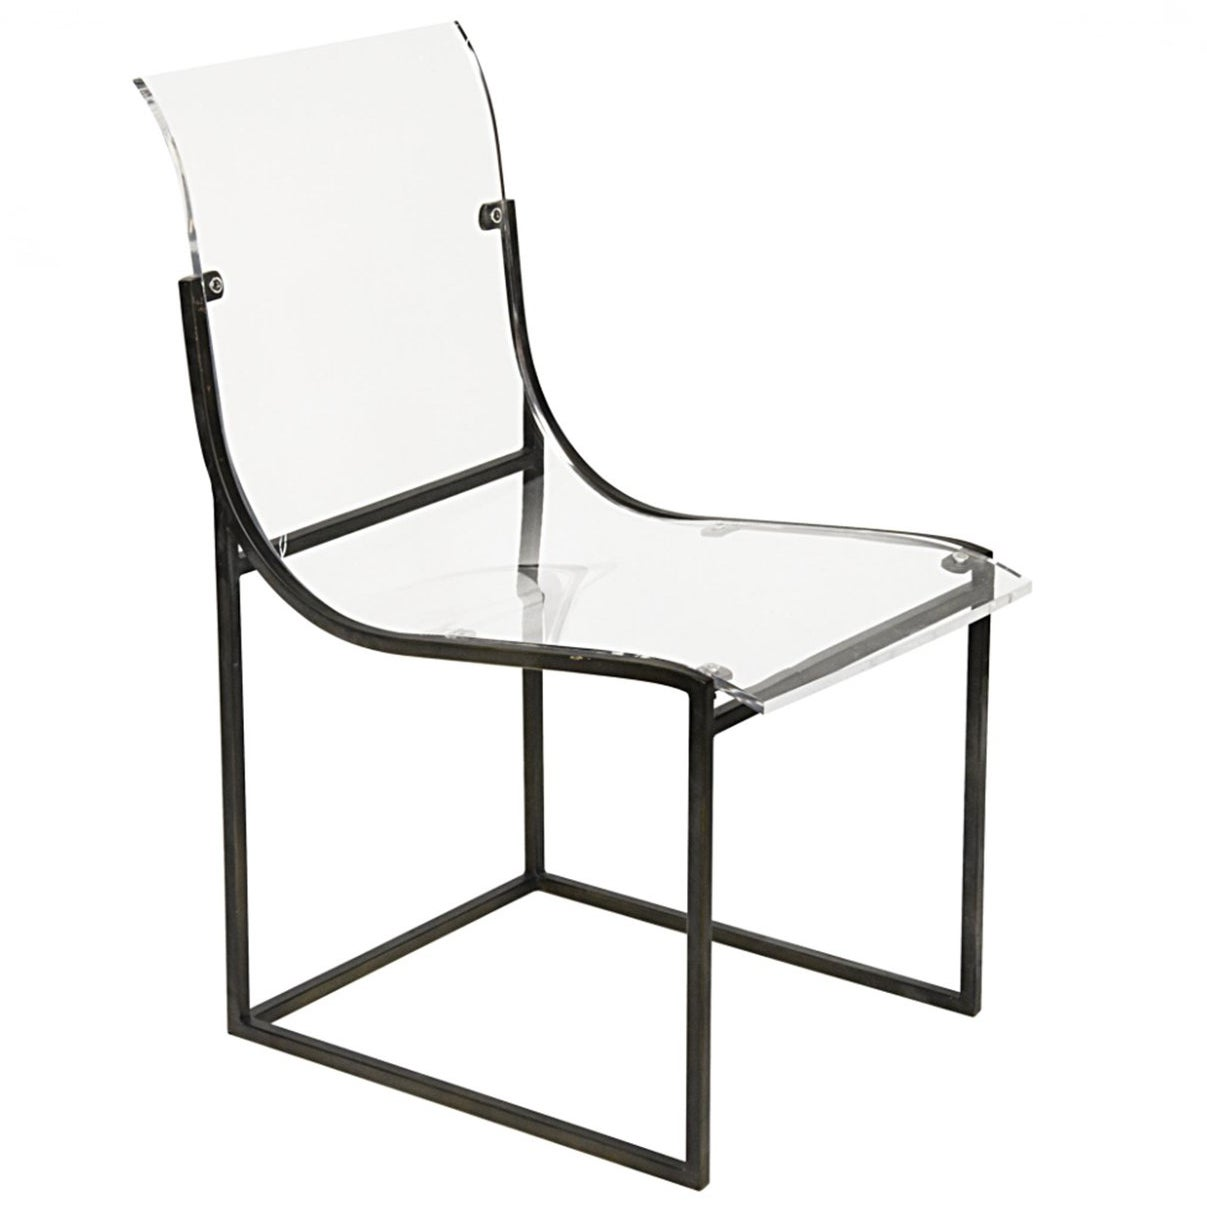 sc 1 st  1stDibs & Functional Art Metal Chair Senegal For Sale at 1stdibs